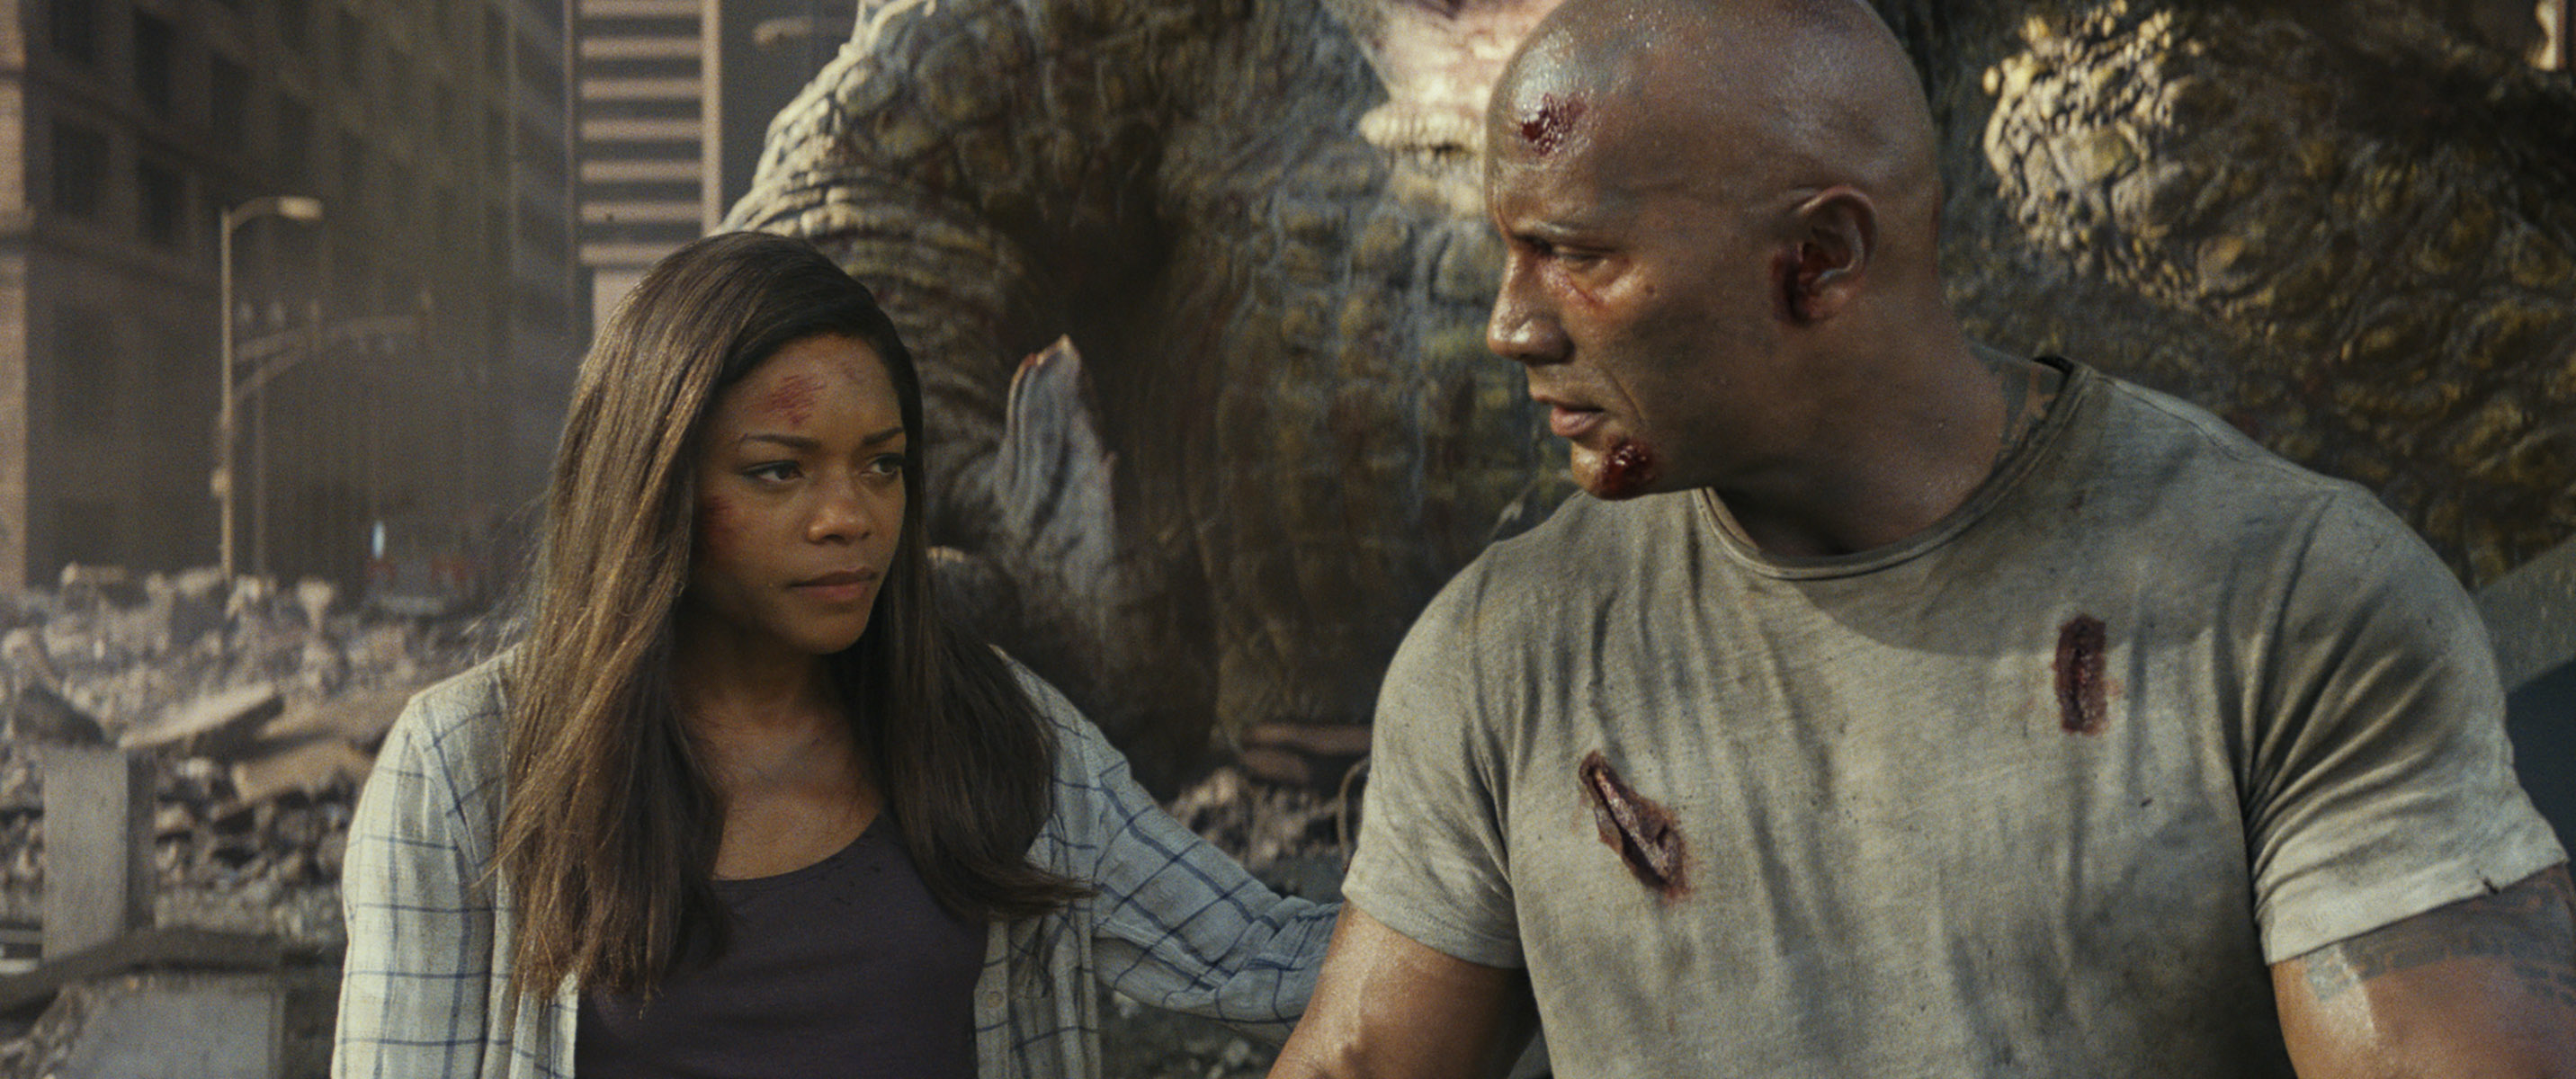 Effects-blending Still An Issue In 'Rampage' [Images] - Bloody